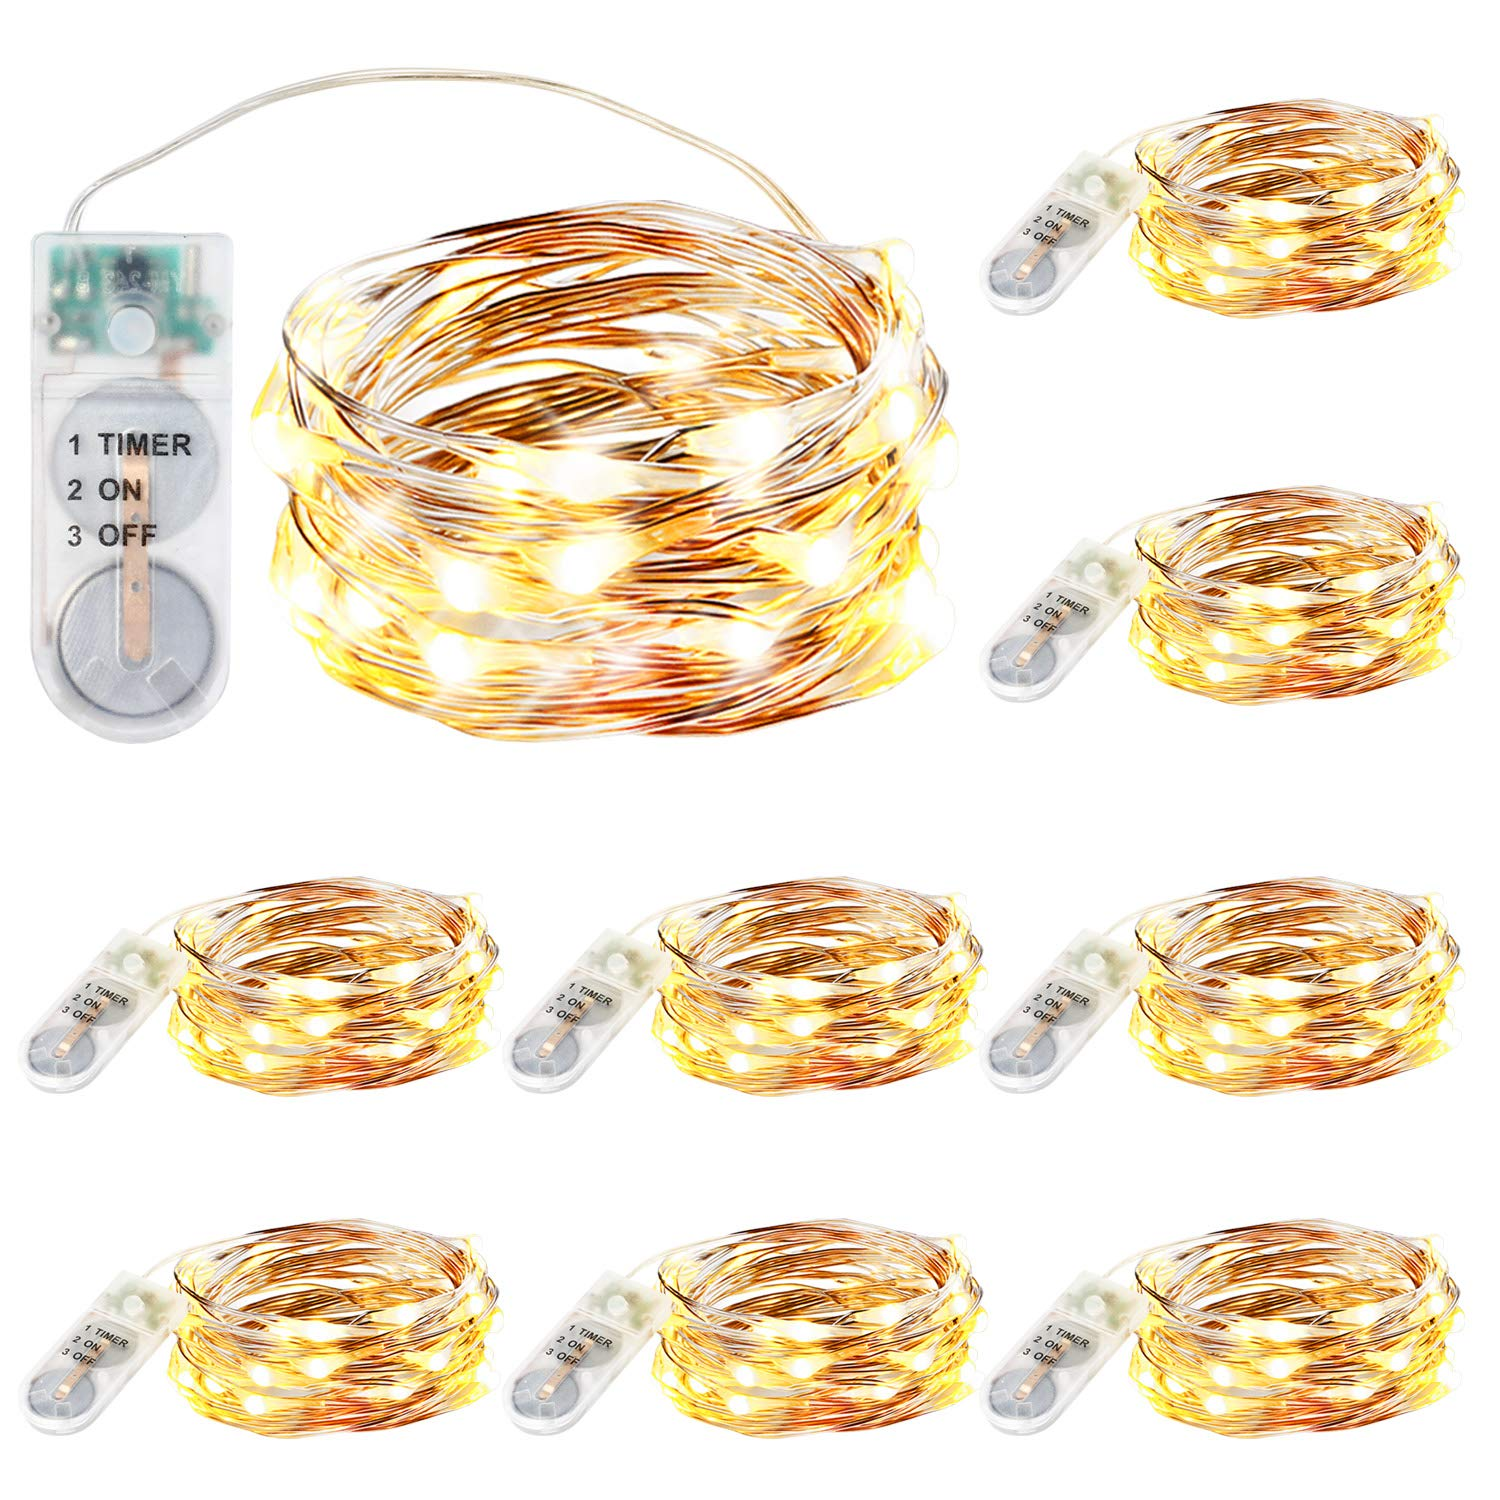 9 Pack Upgraded Fairy String Lights with Timer, 7.2FT 20LED Warm White Fairy Lights Battery Operated, Mini Copper Wire Firefly Bunch Lights for Mason Jars Christmas Decorating, Gifts for Girl Women